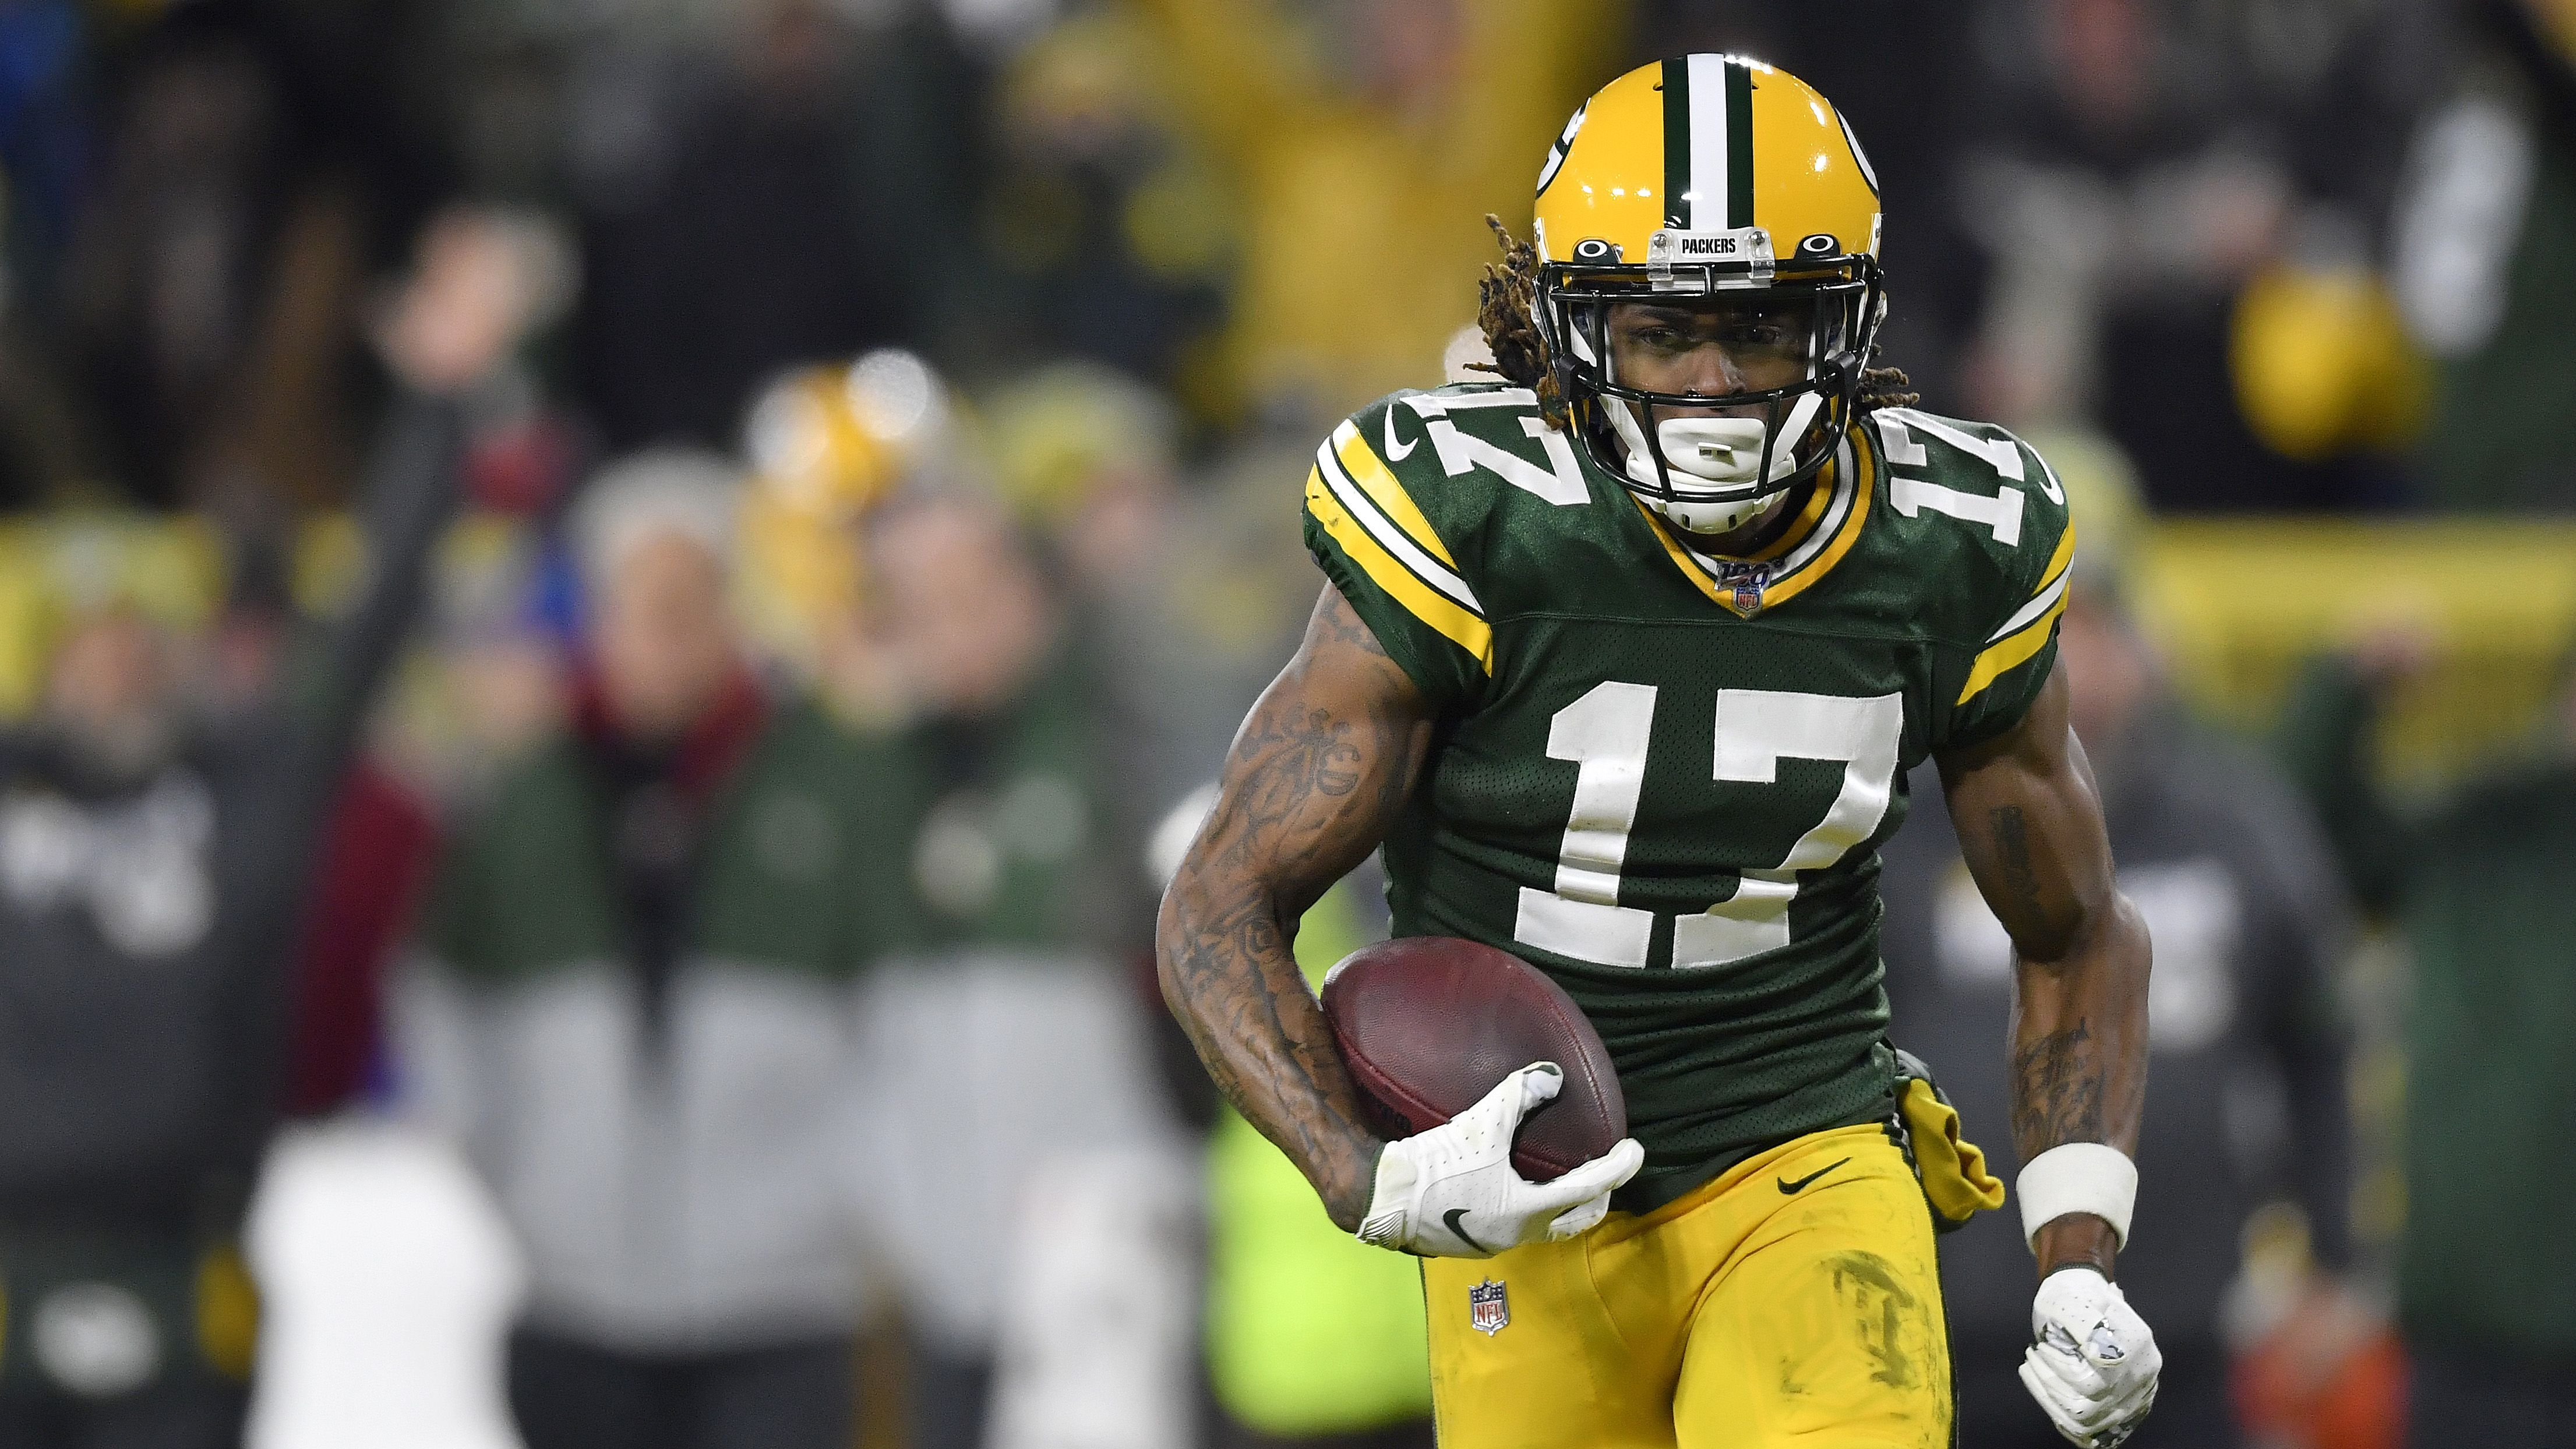 Inside Rodgers Audible That Stunned Lafleur National Football League News In 2020 Nfl News National Football League National Football